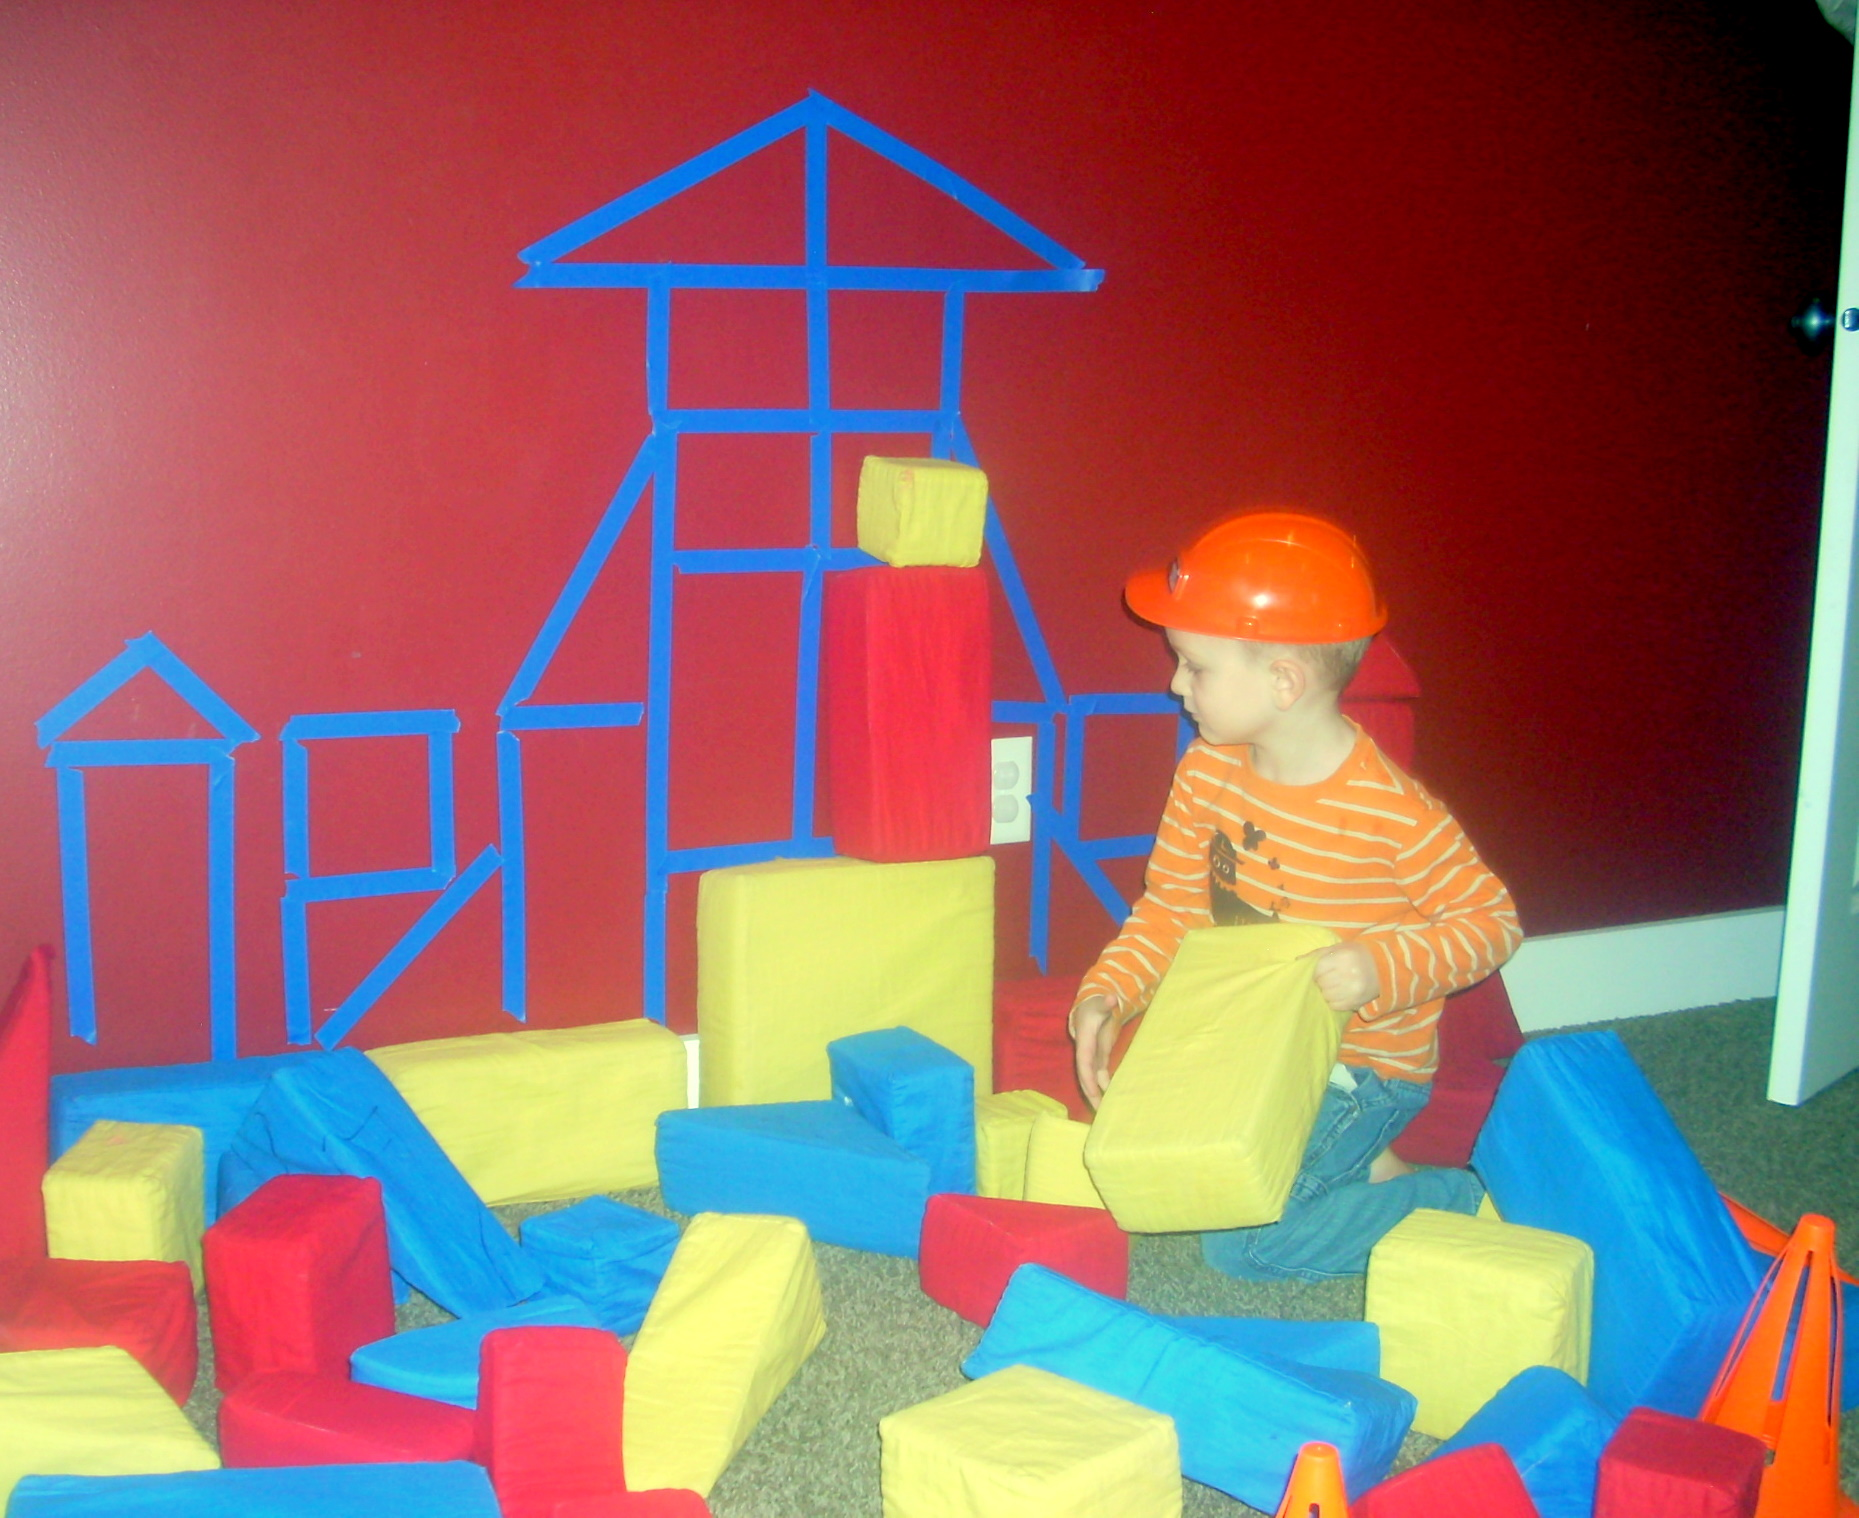 construction themed activities for preschoolers let s build activities for a preschool tools and 506